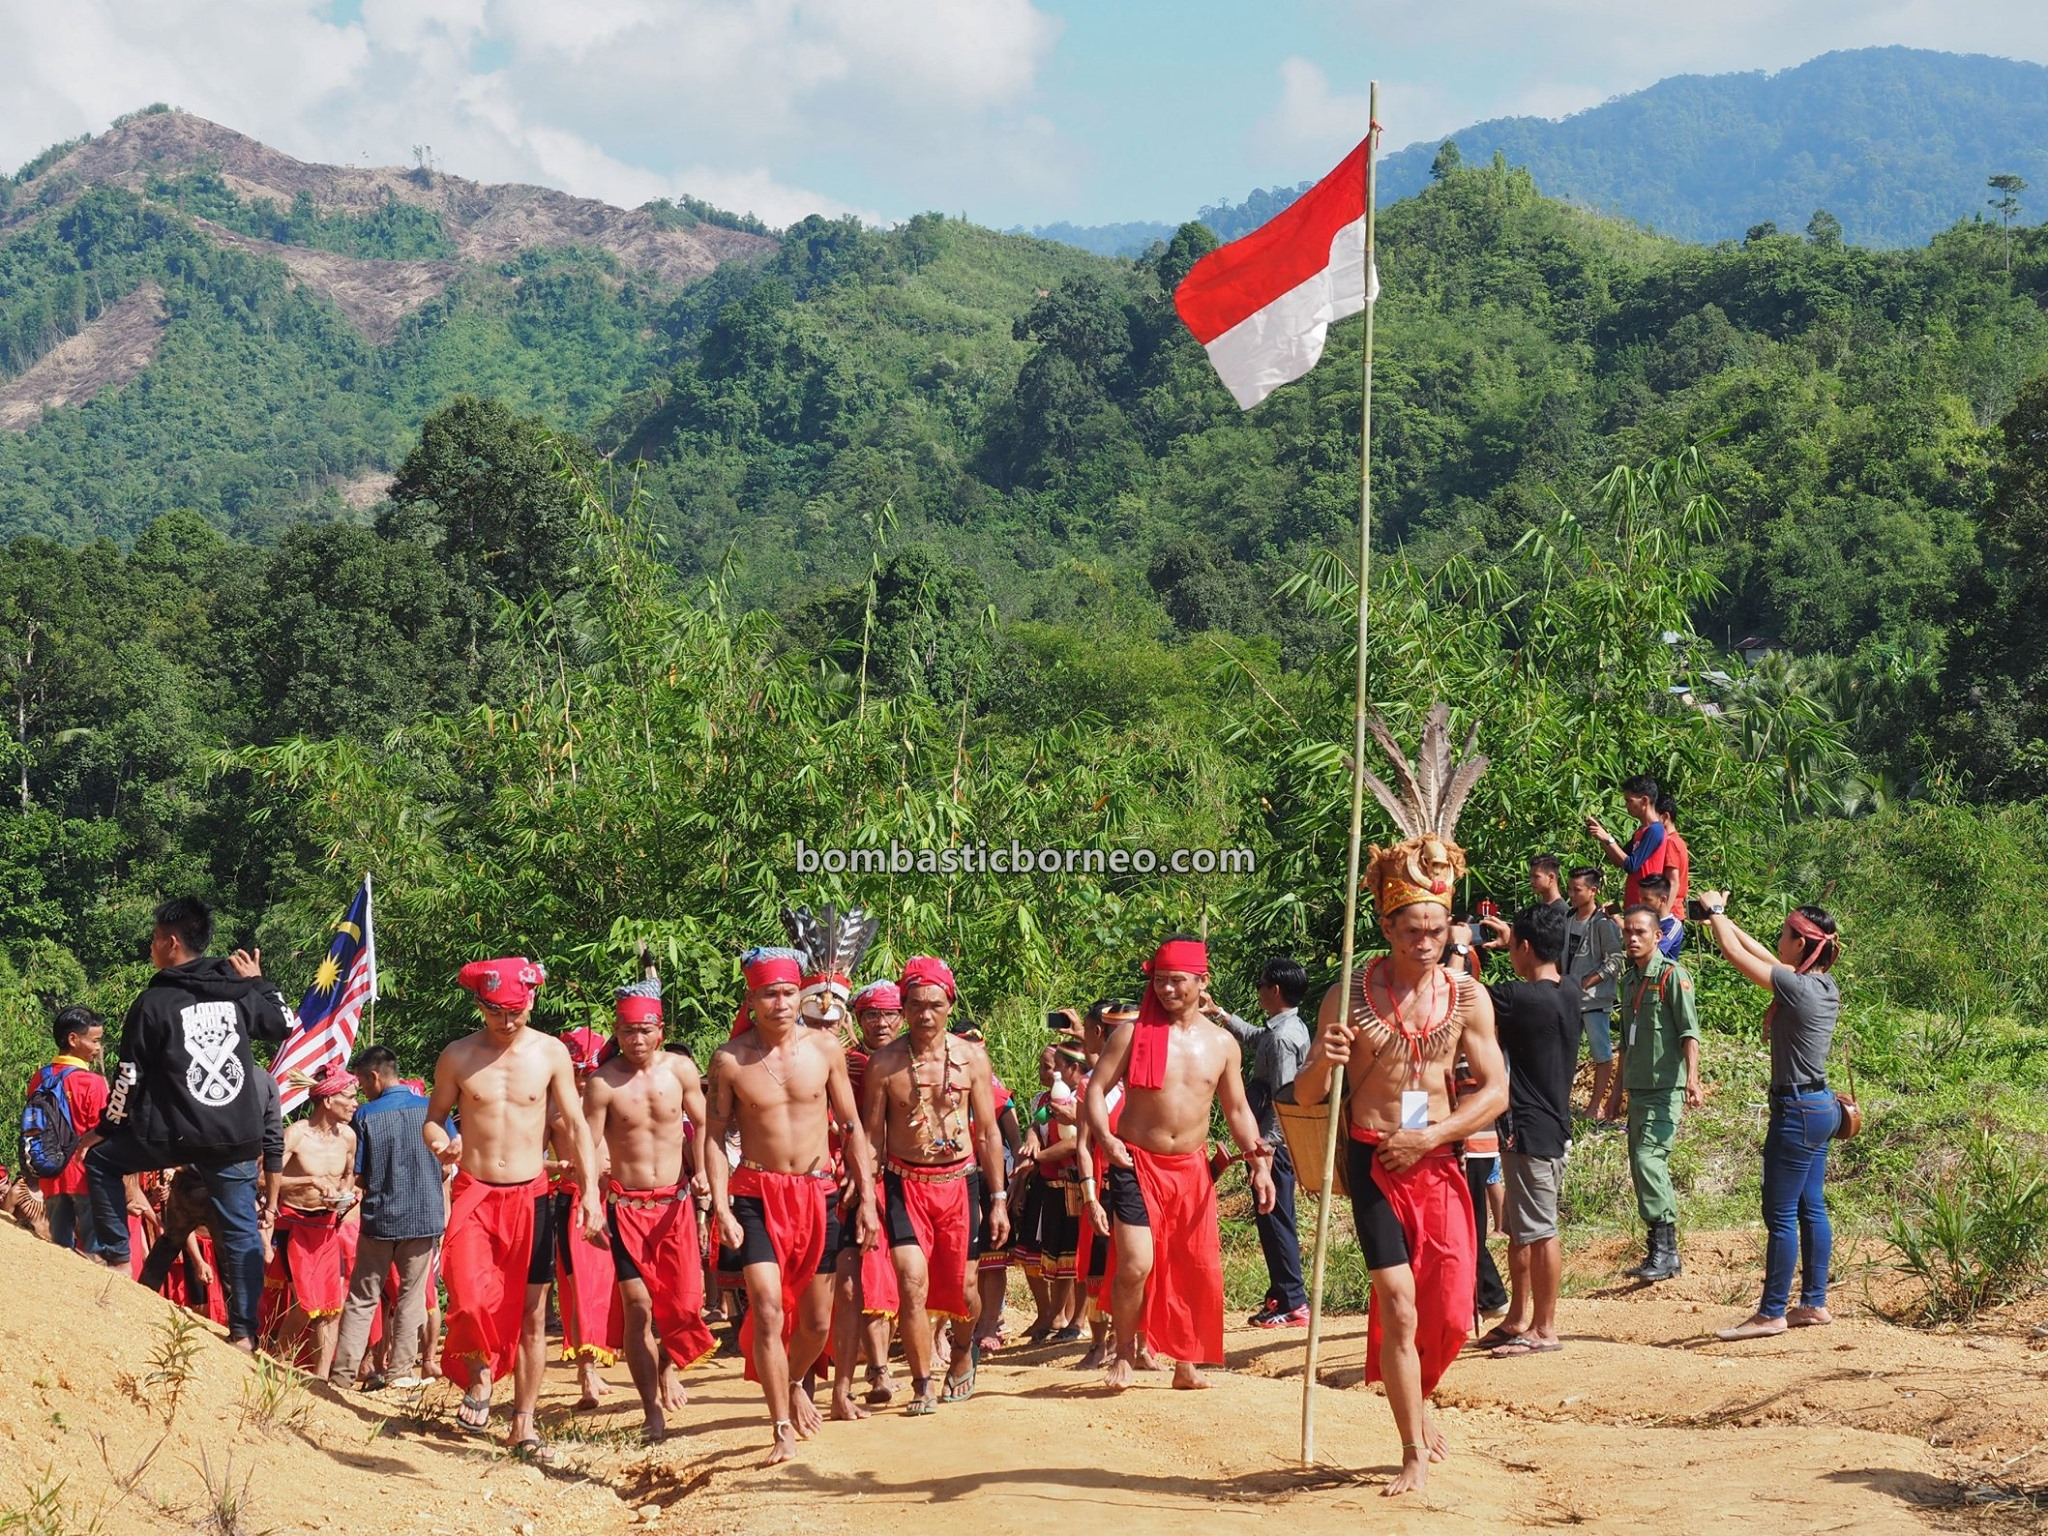 nyobeng, Sungkung Anep, Dusun Medeng, traditional, indigenous, Indonesia, native, tribal, village, Tourism, tourist attraction, travel guide, Trans Borneo, 探索婆罗洲游踪, 印尼西加里曼丹, 孟加映原住民丰收节